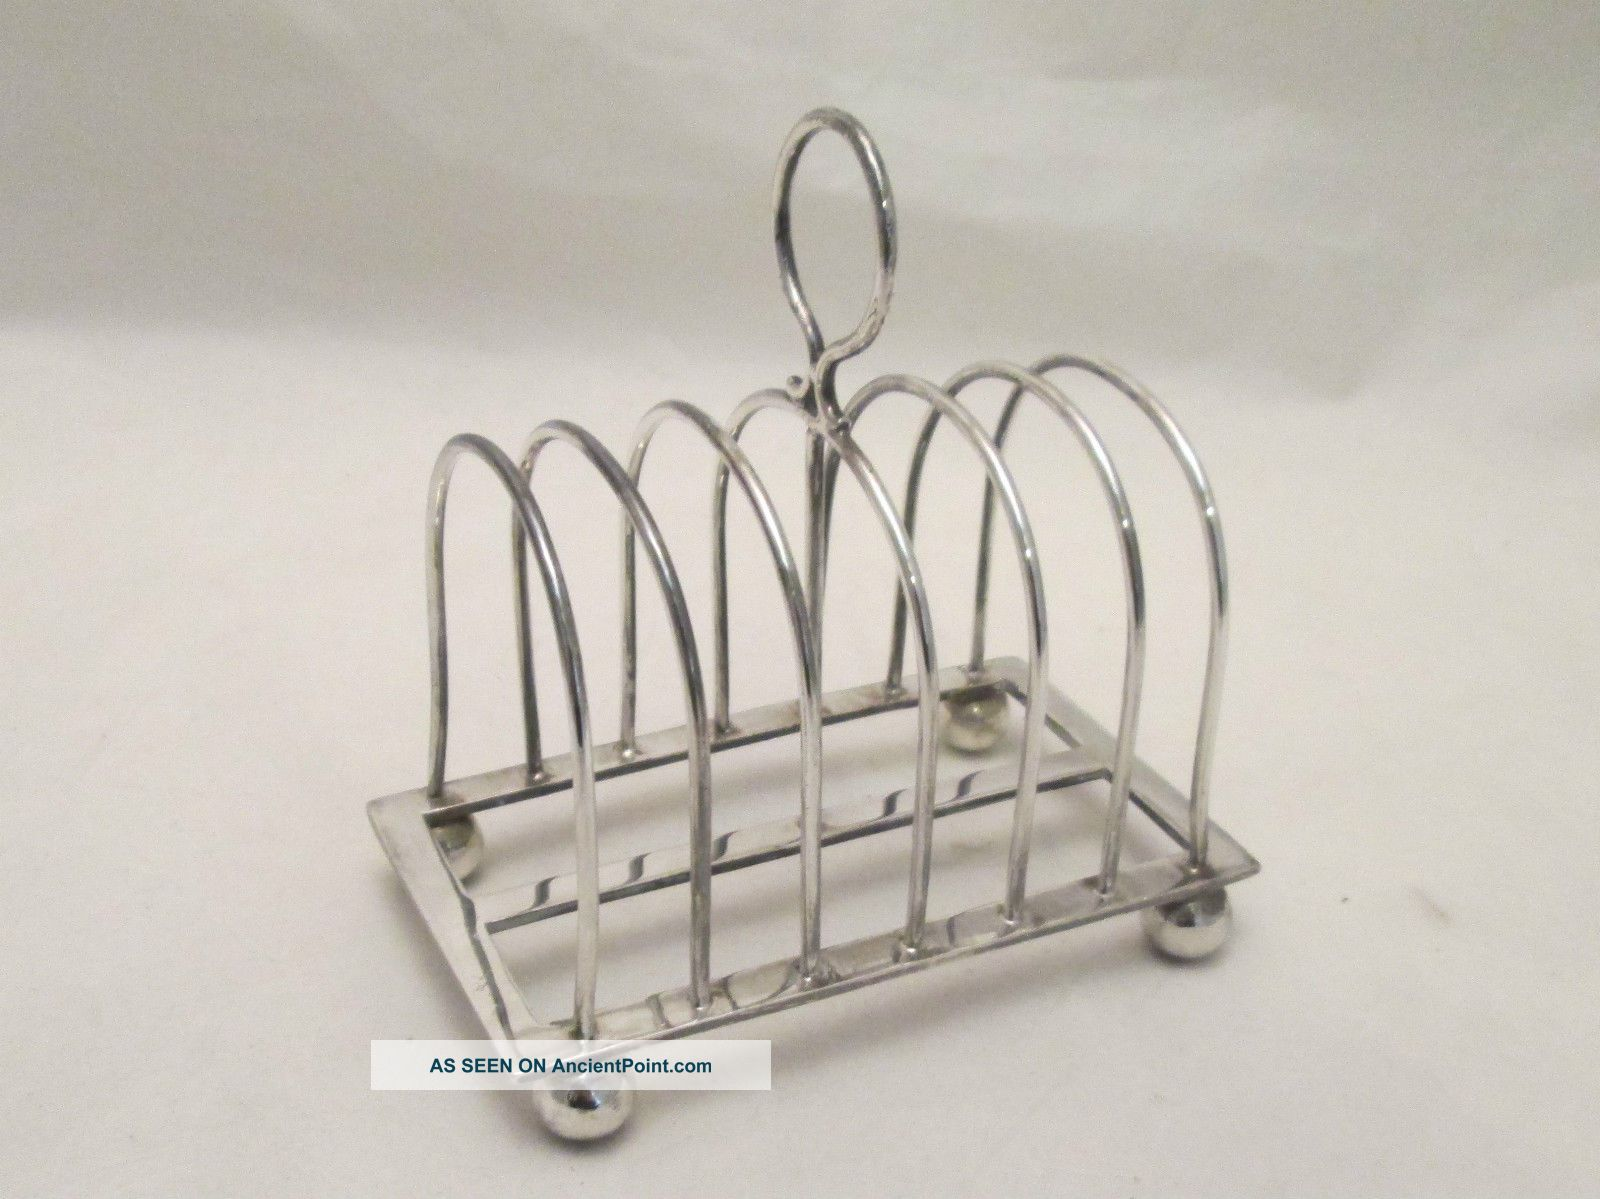 A Silver Plated Toast Rack By Hutton & Sons - Early 20th Century Other Antique Silverplate photo